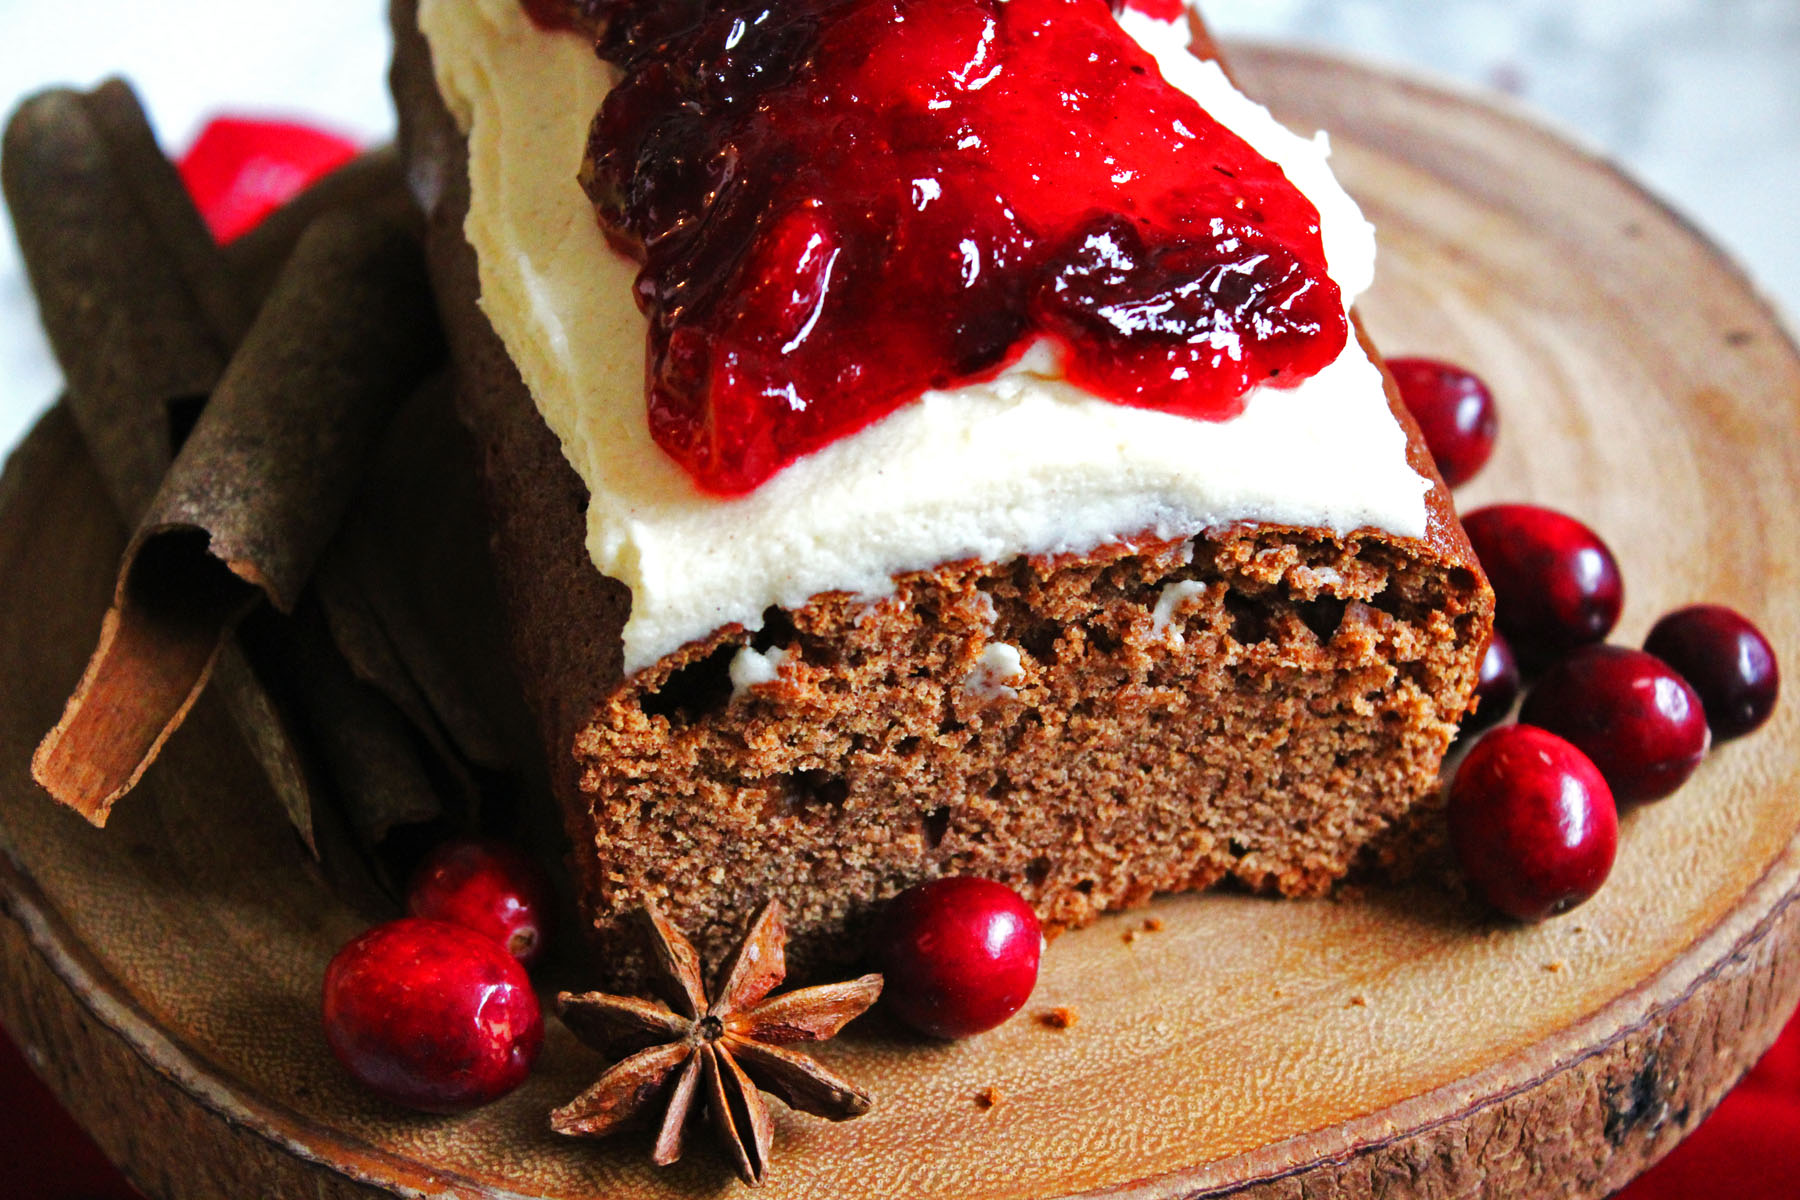 Cinnamon Loaf Cake with Cream Cheese Frosting and Mulled Cranberry Compote